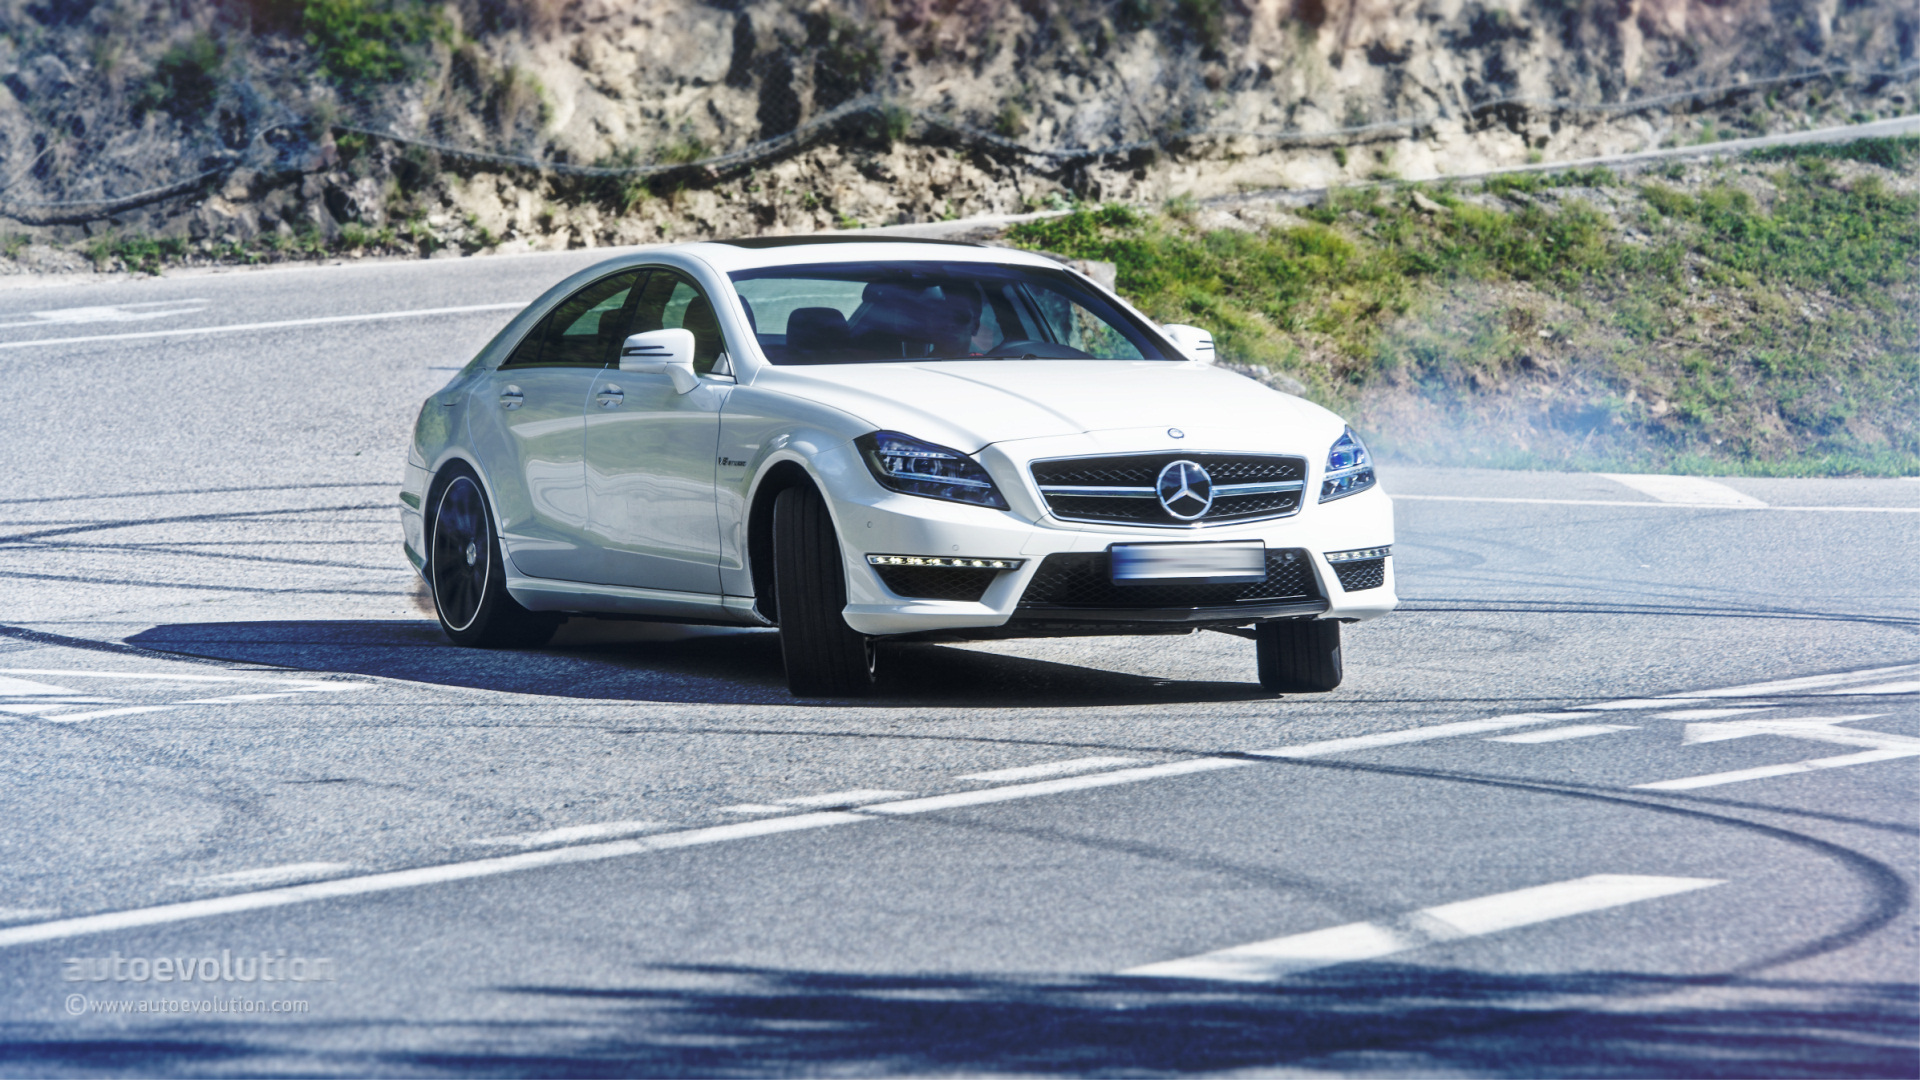 mercedes benz cls 63 amg 4matic tested by autoevolution. Black Bedroom Furniture Sets. Home Design Ideas